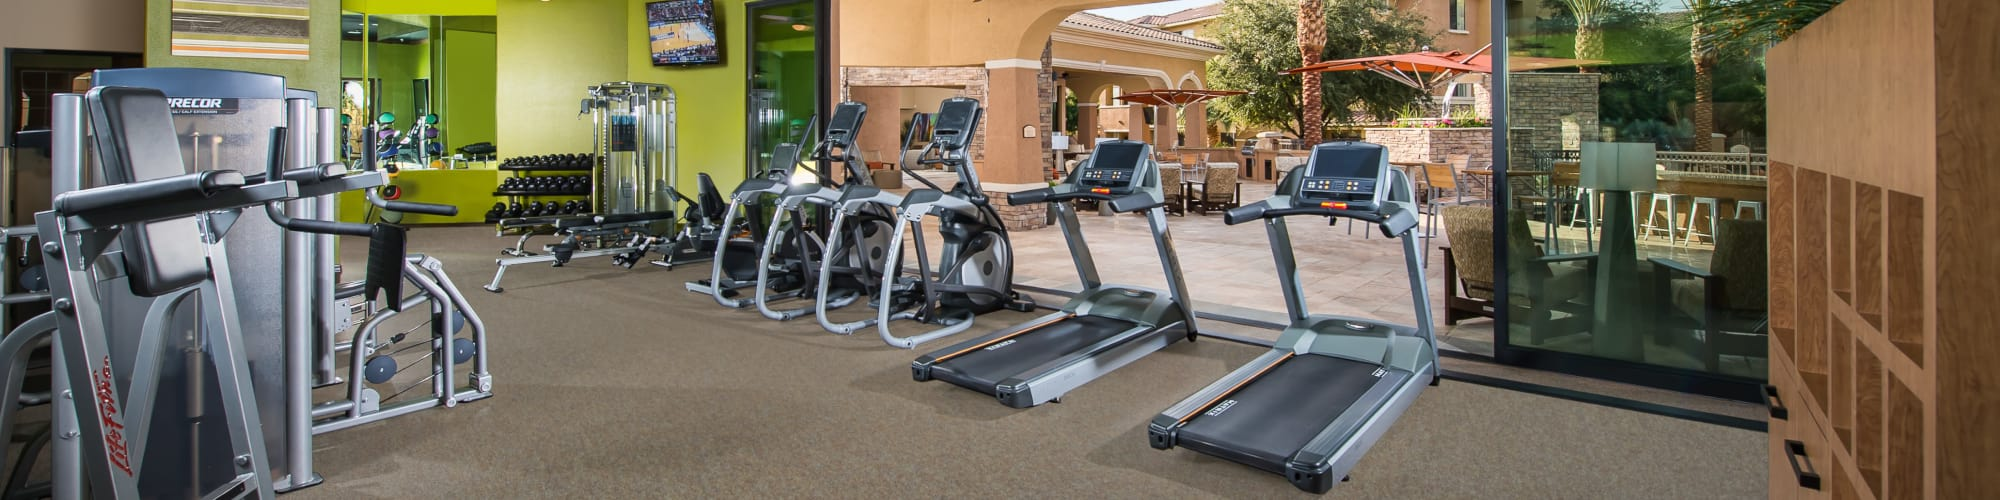 Amenities at Stone Oaks in Chandler, Arizona